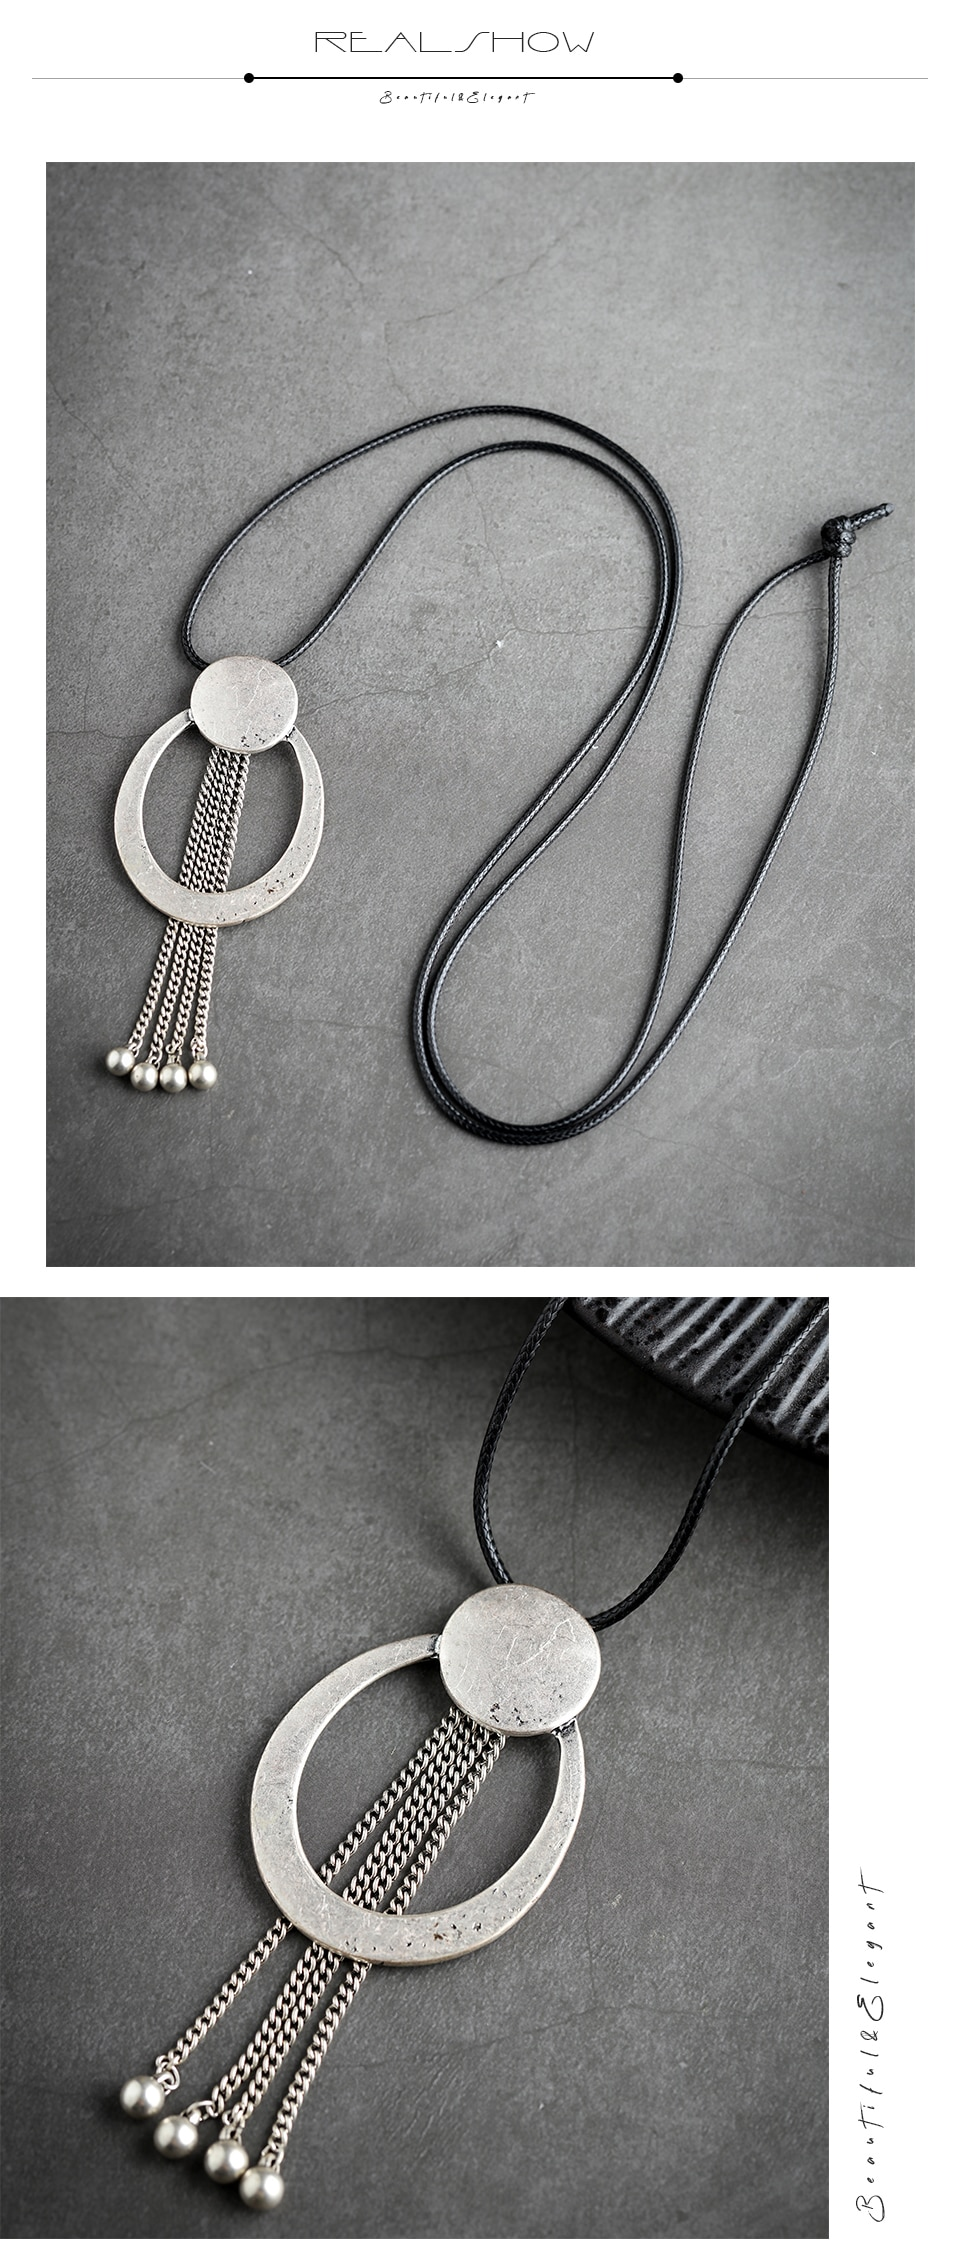 Long Necklace for Women Chokers Vintage Rope Chain suspension 2020 New Tassel Statement Necklaces & Pendants Women's  Jewellery